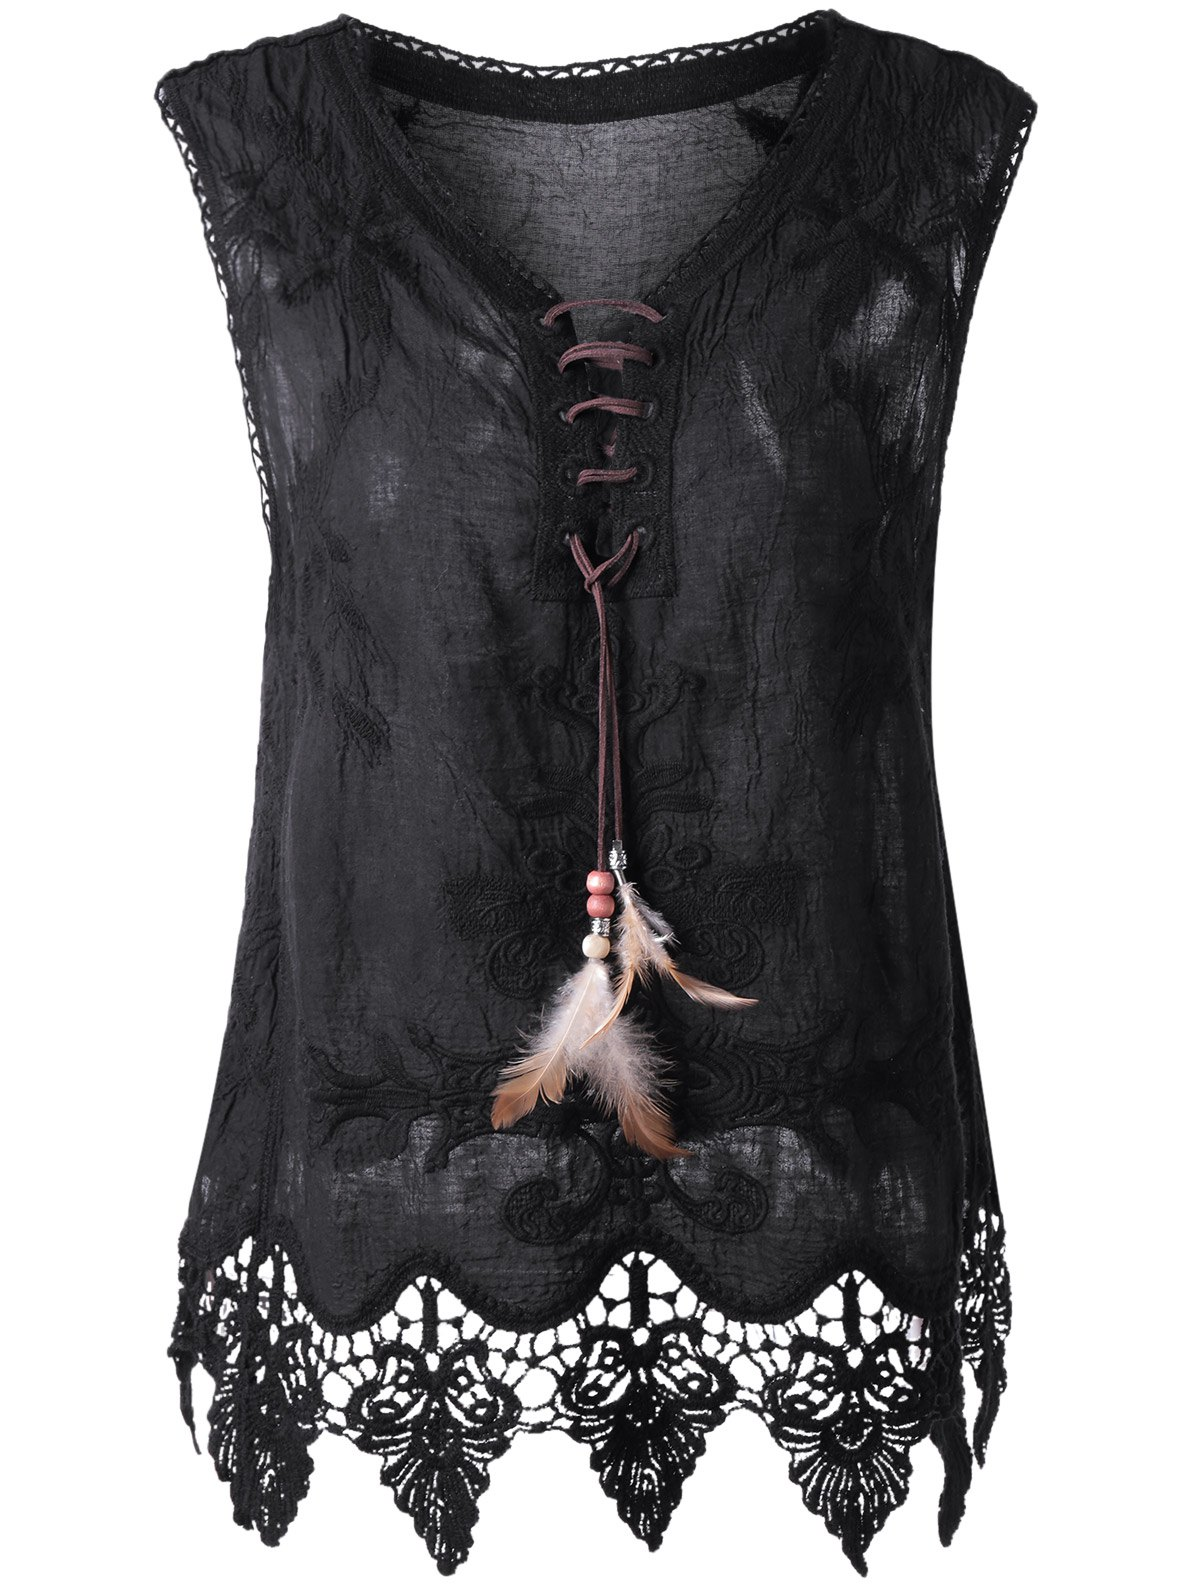 Bohemian Women's Lace-Up Crochet Sleeveless Top - BLACK ONE SIZE(FIT SIZE XS TO M)